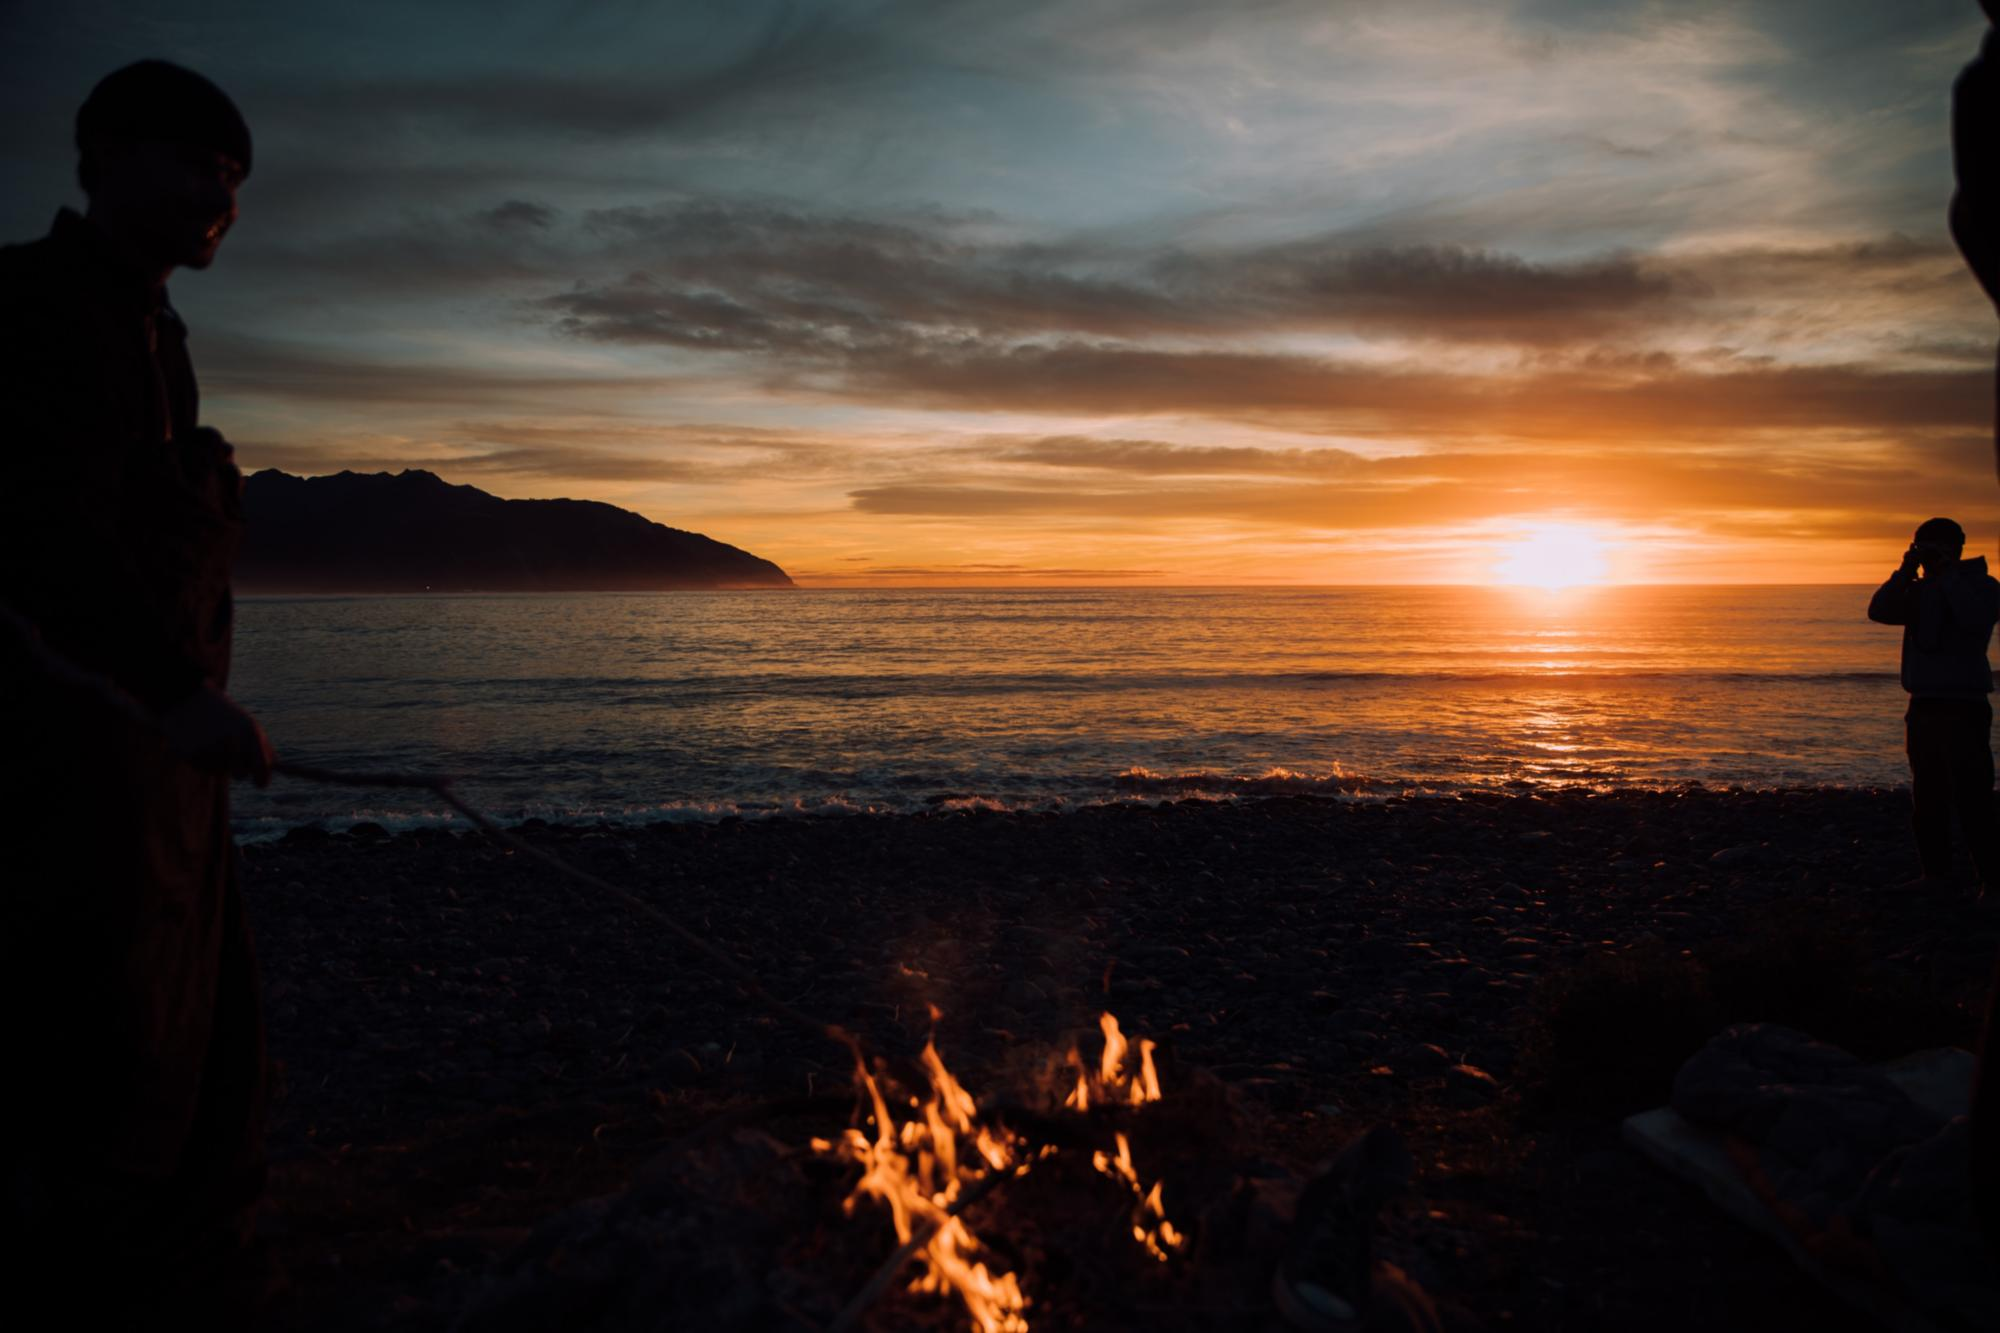 Lagerfeuer am See (c) Photo by Tim Marshall on Unsplash